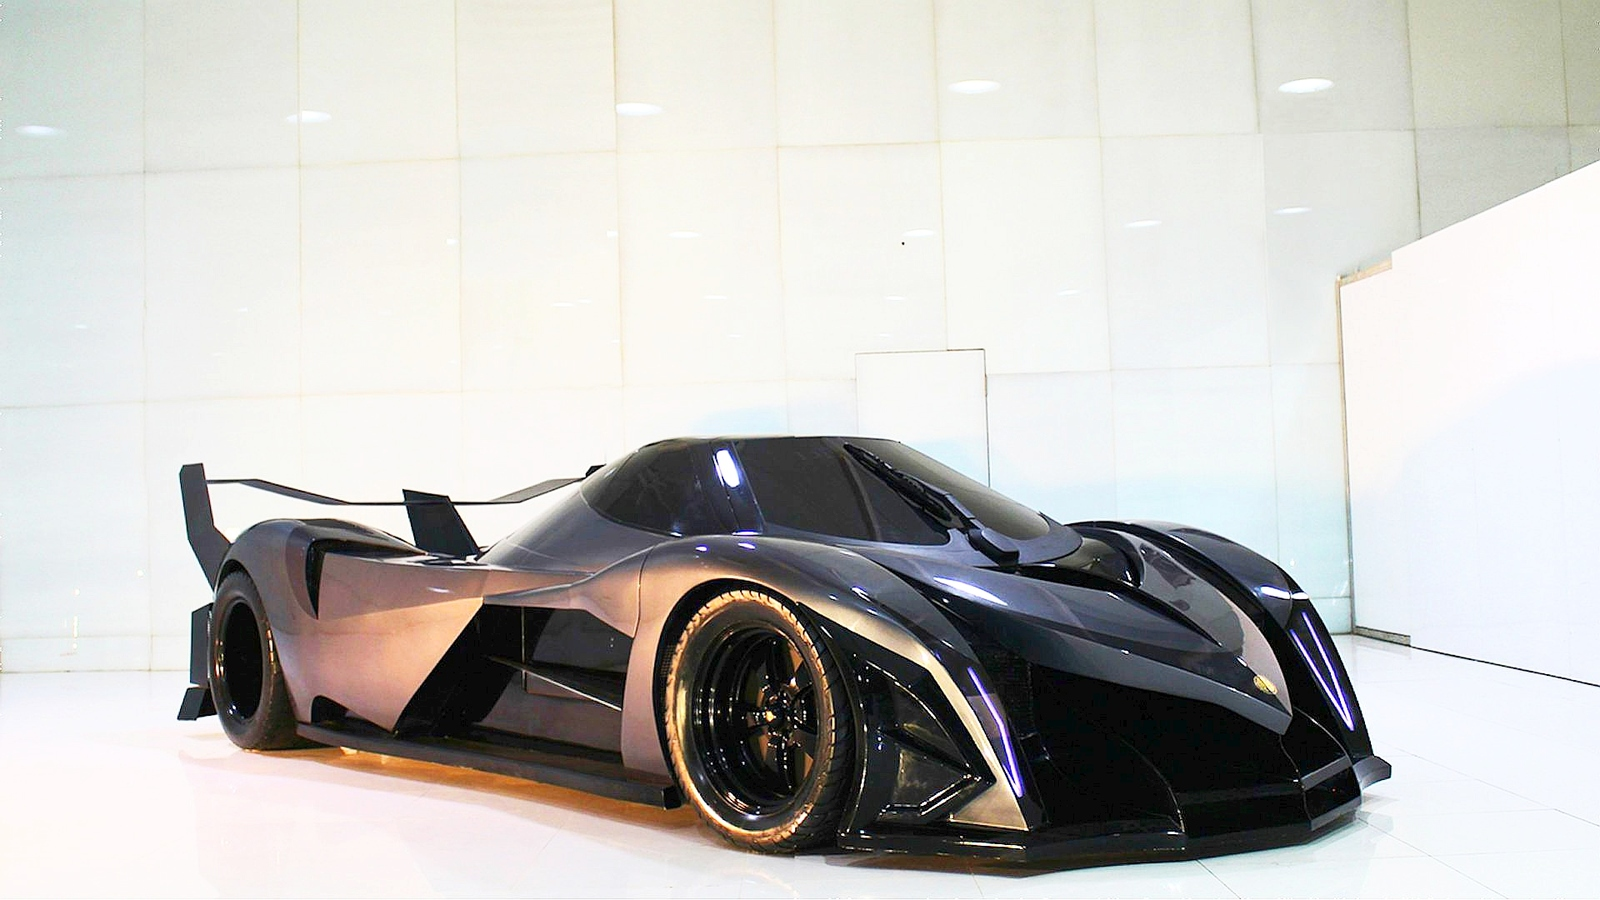 Devel Sixteen This Hypercar From Another World Will Bring You To